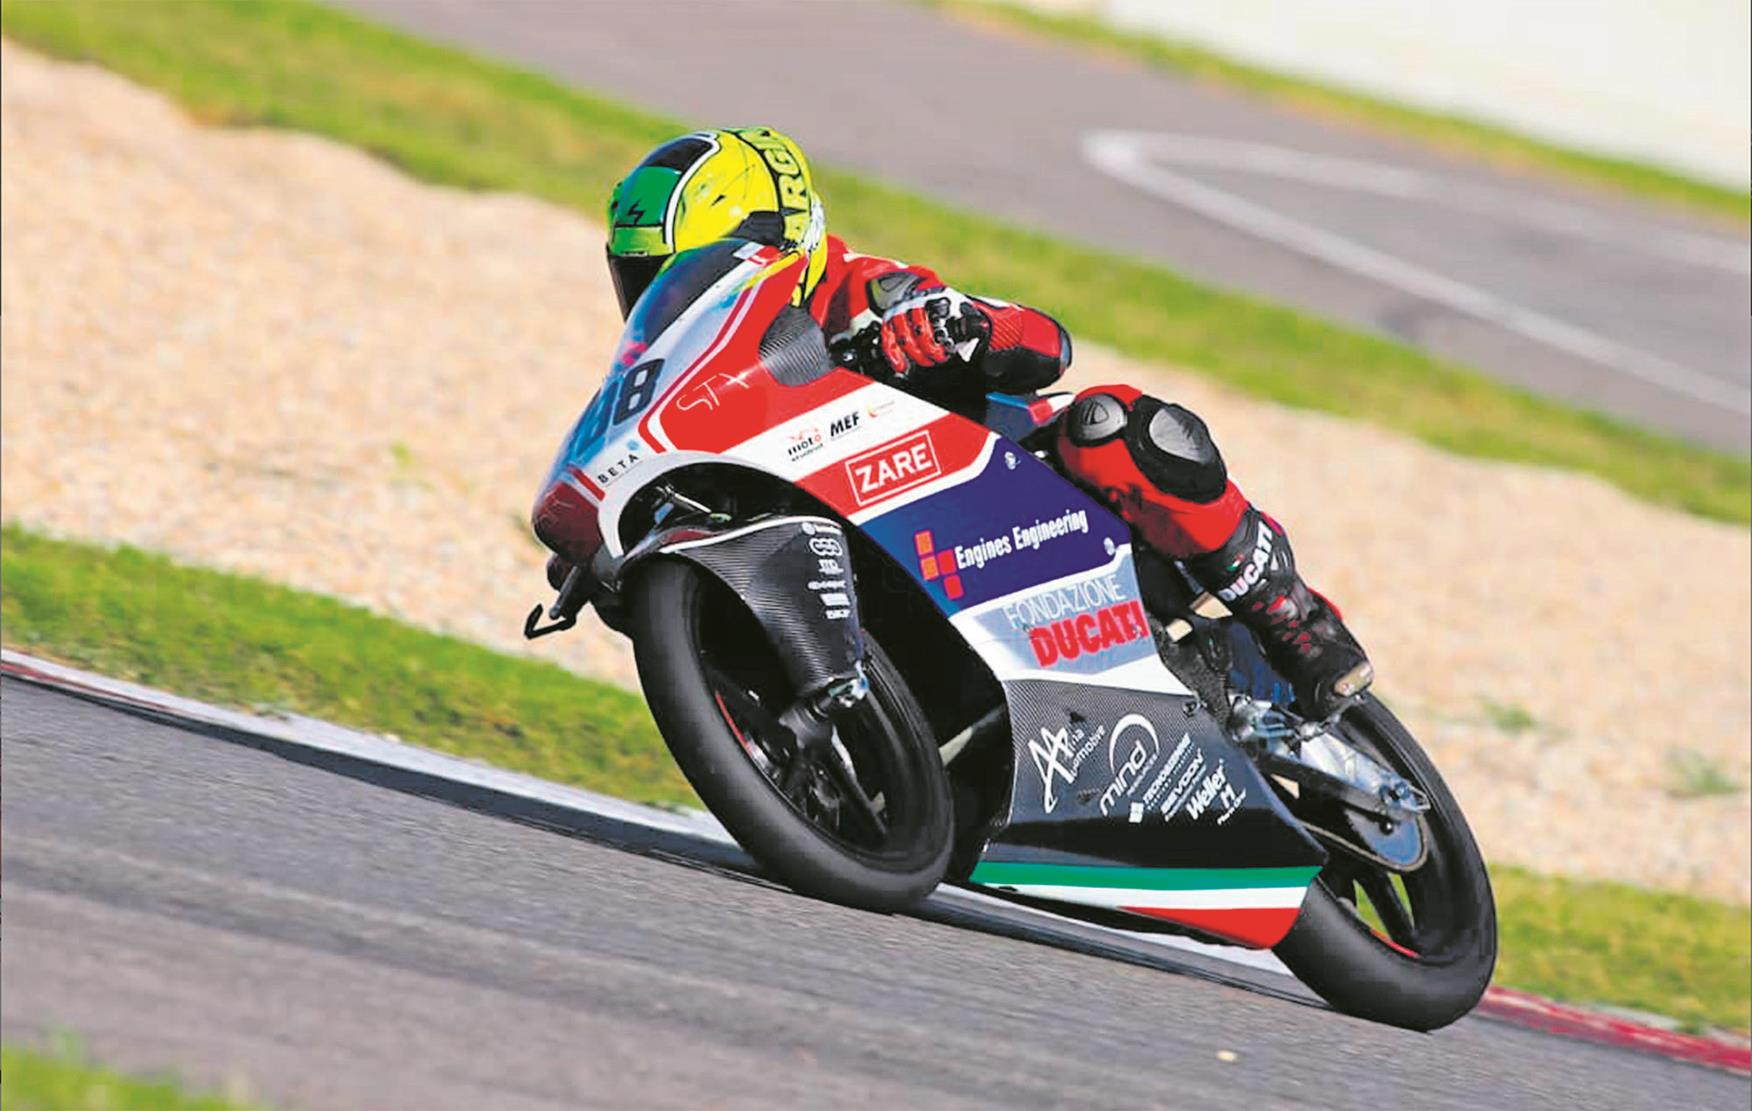 Electric student racer also had help from Ducati